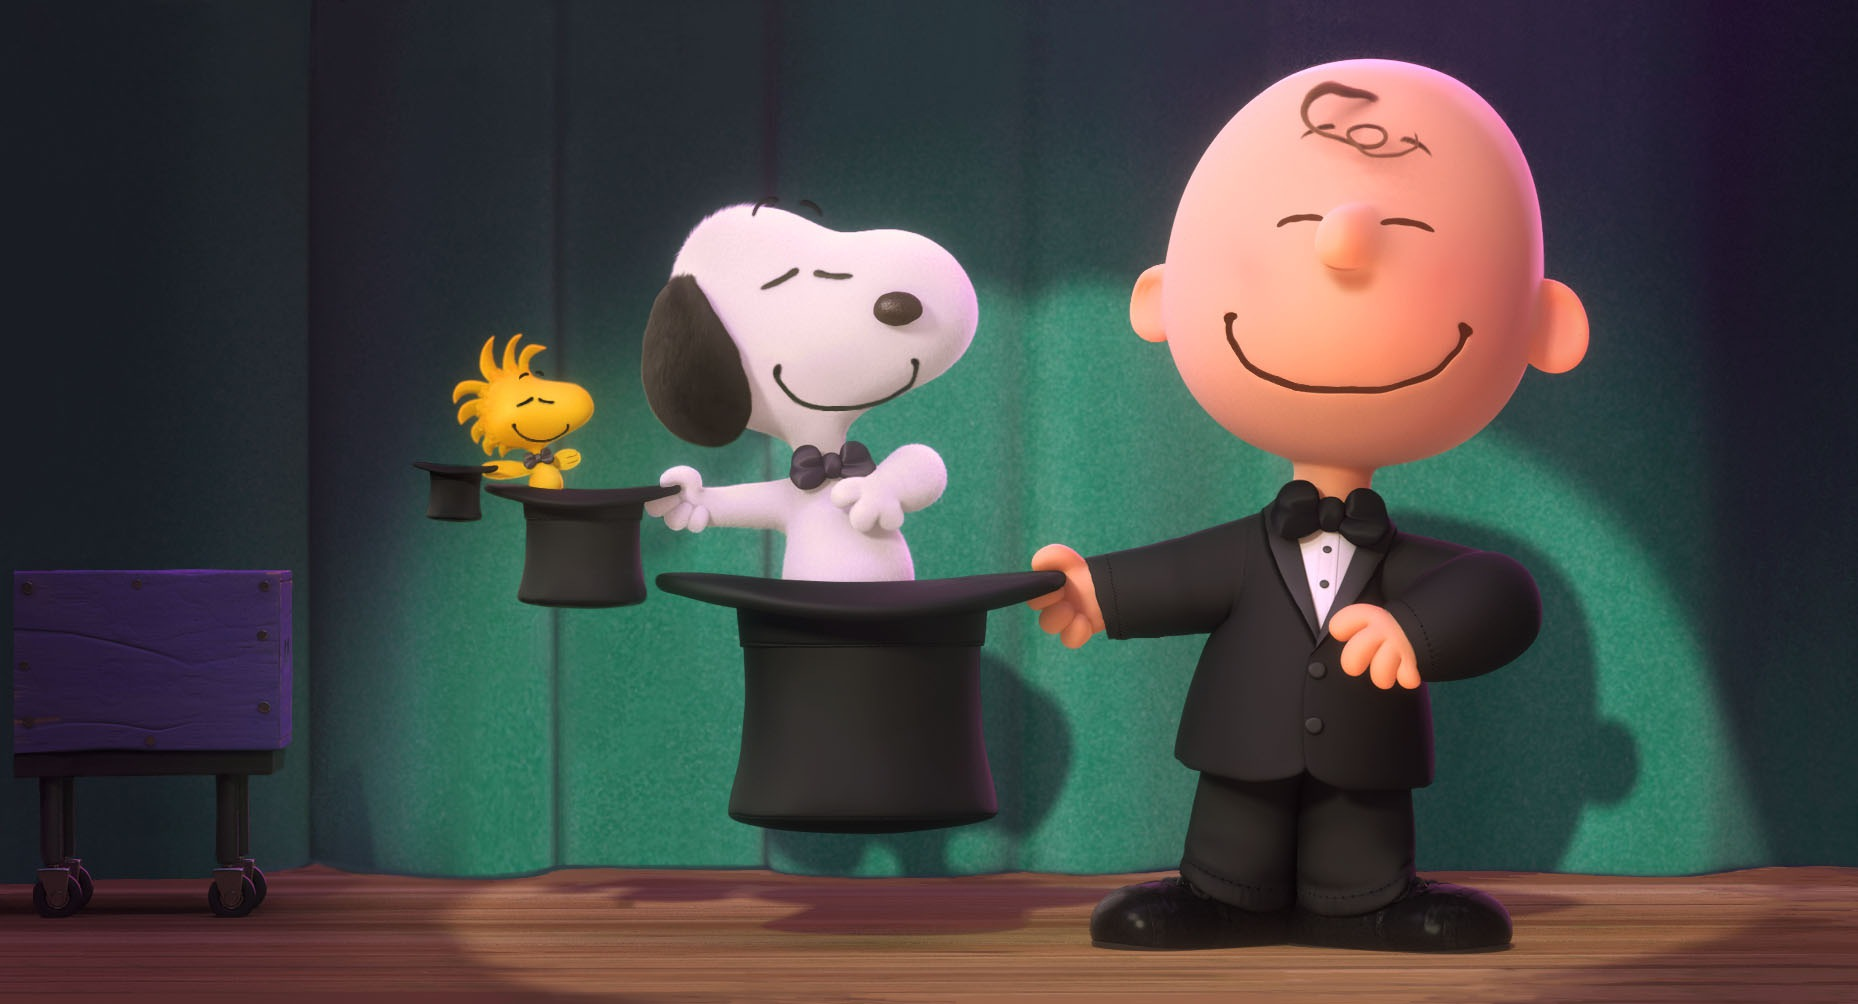 Peanuts Images Magic Act Hd Wallpaper And Background Photos 39169405